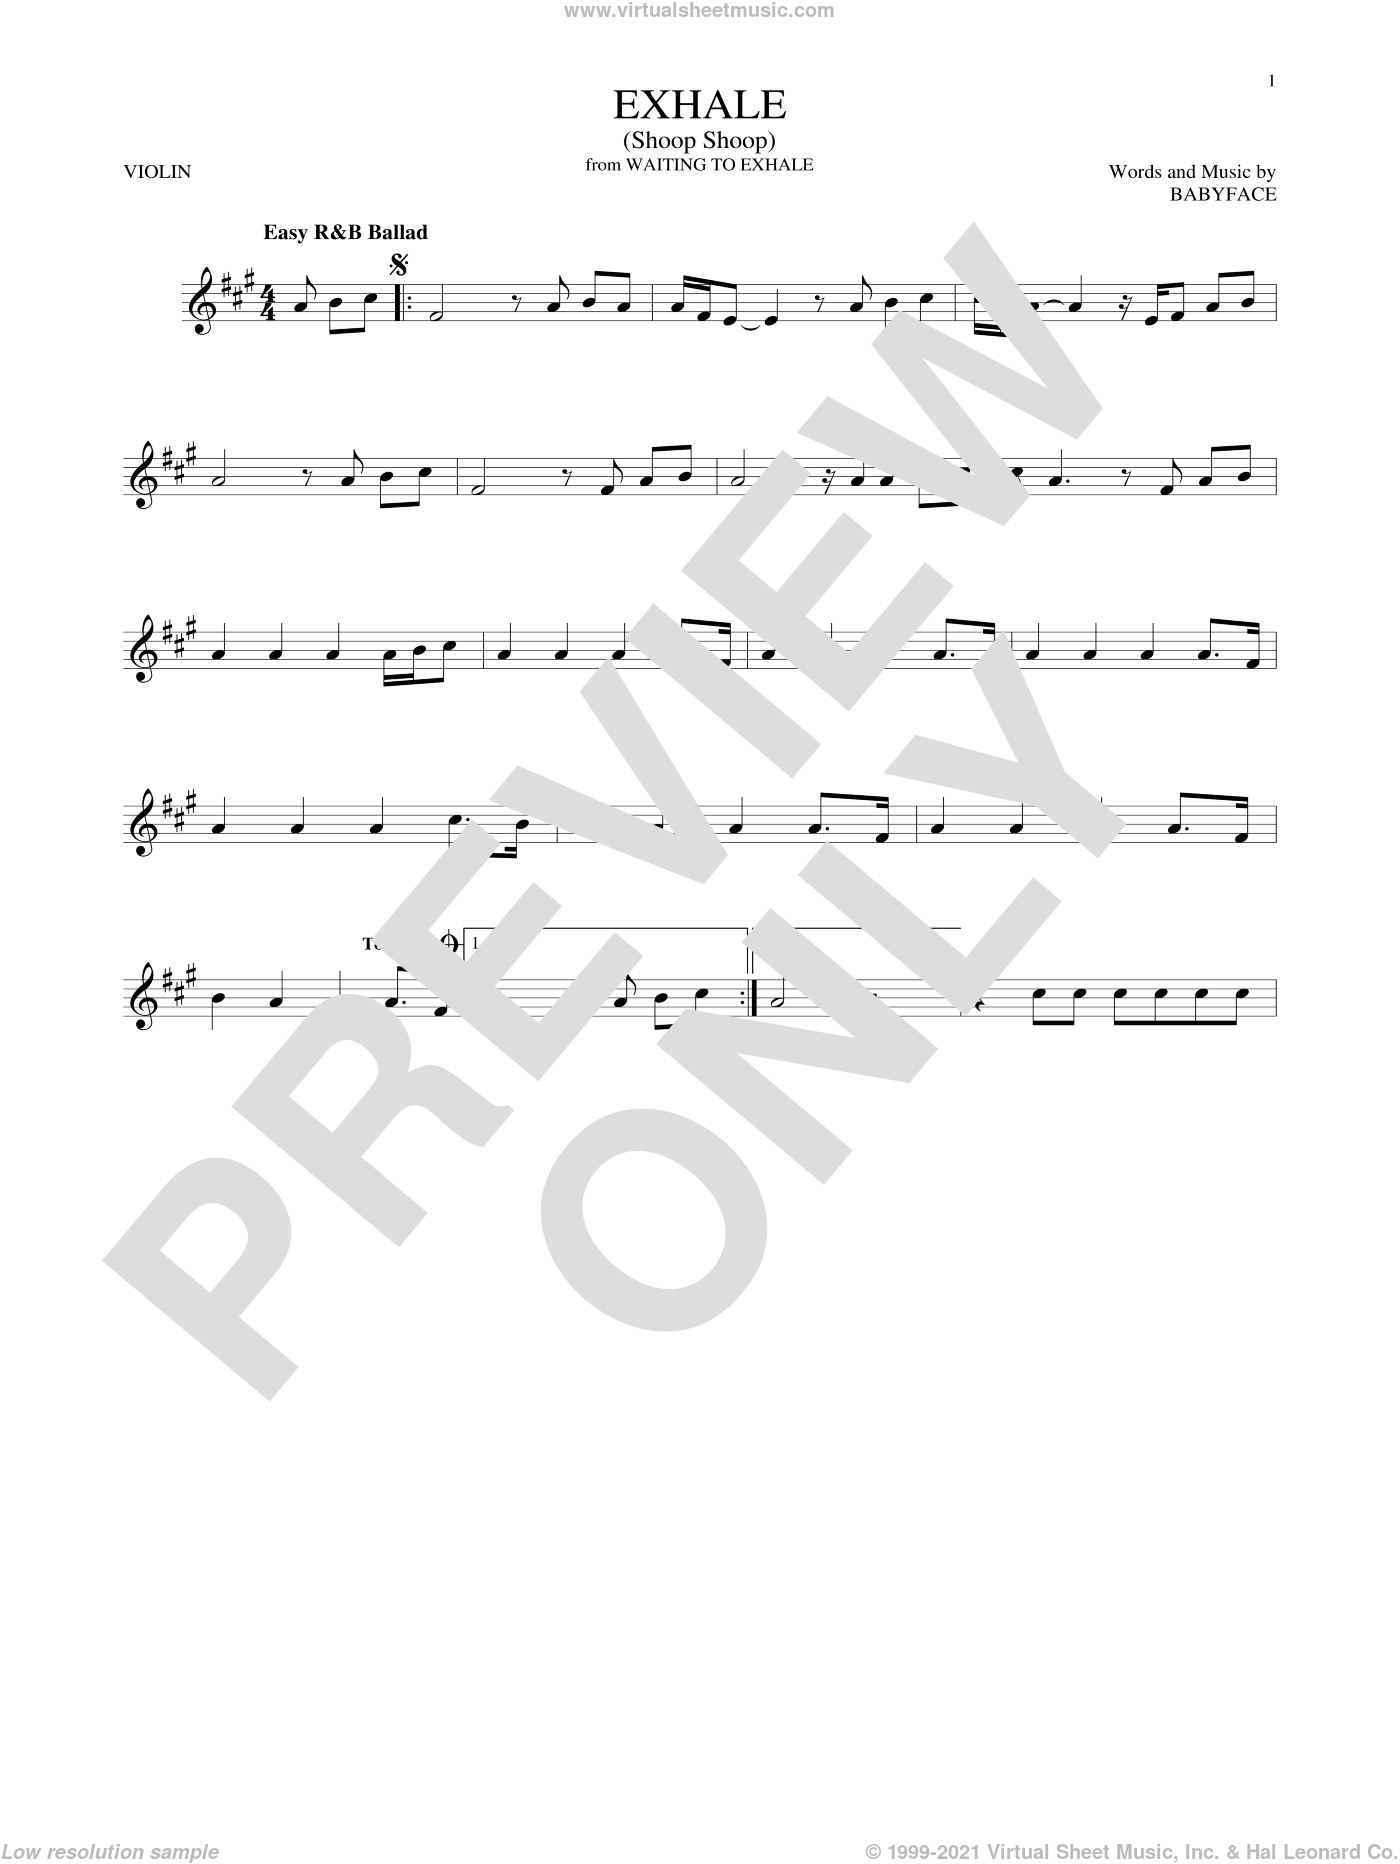 Exhale (Shoop Shoop) sheet music for violin solo by Babyface